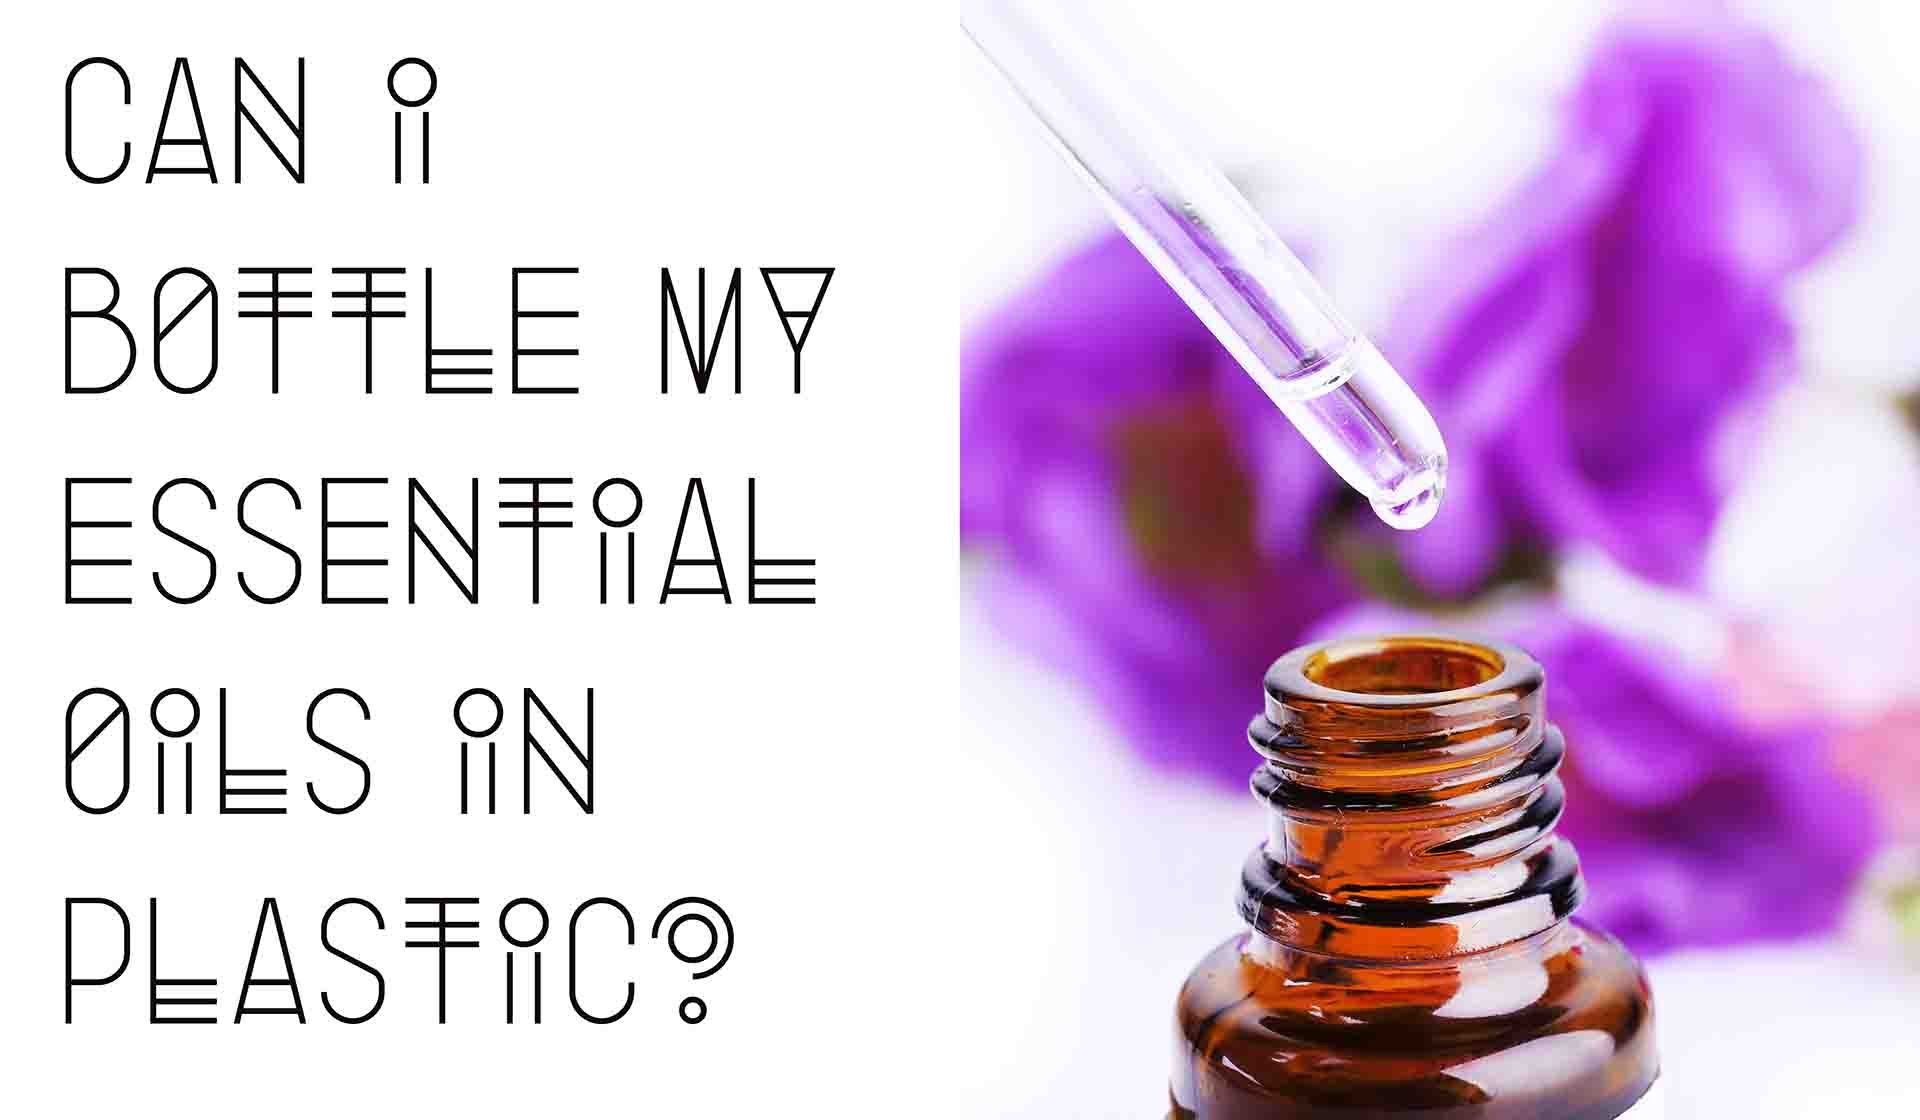 Can I Bottle My Essential Oils in Plastic?